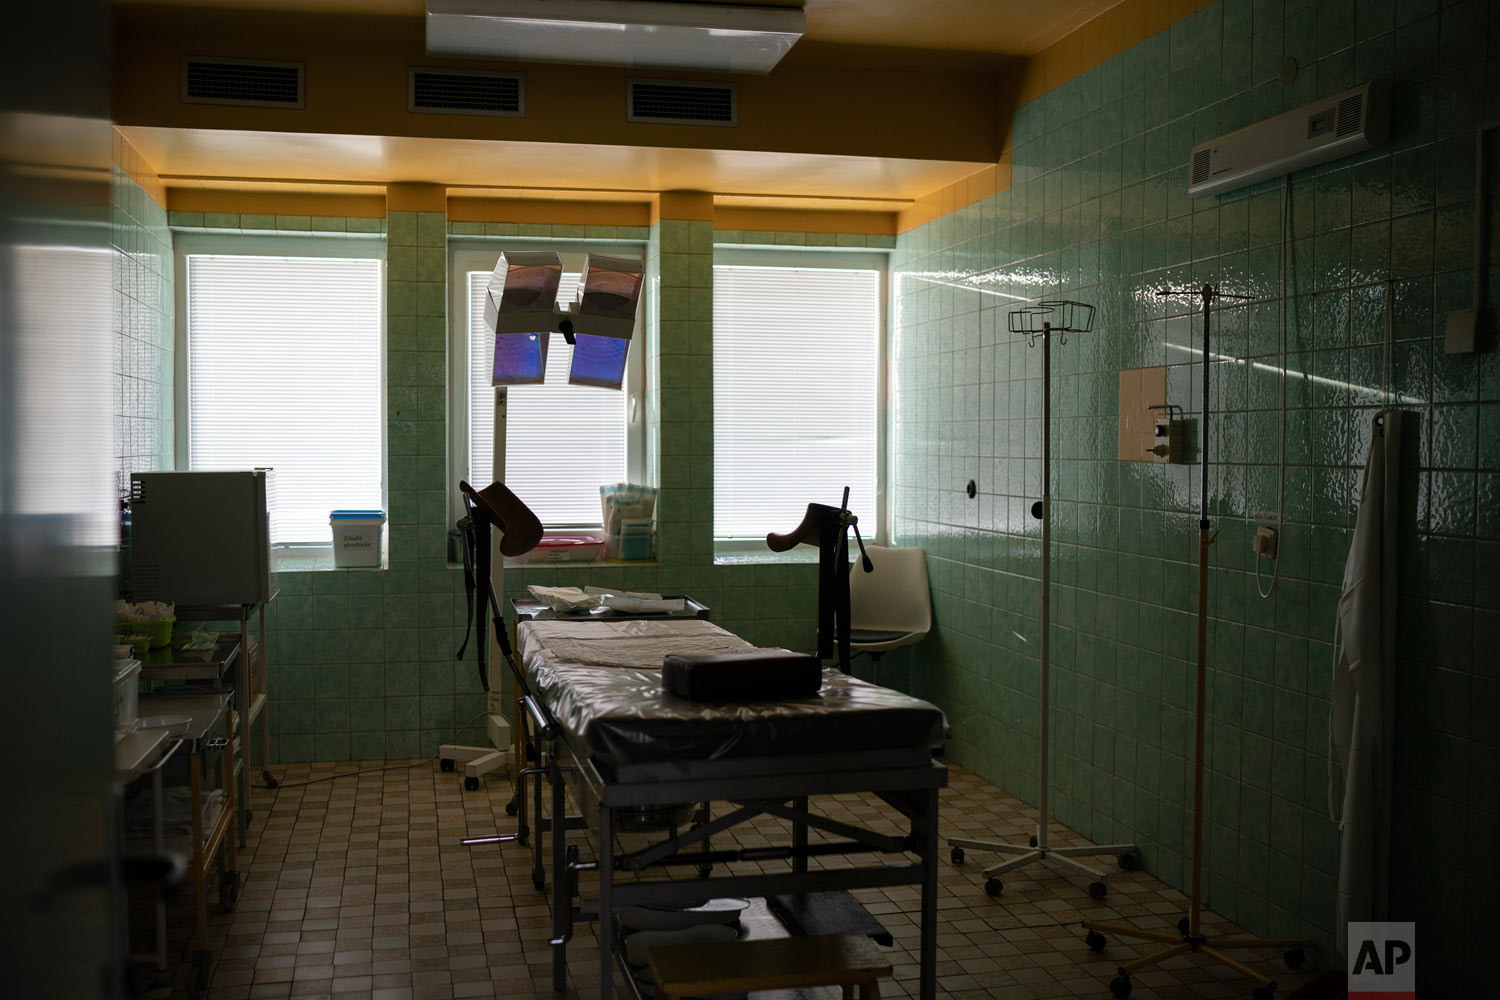 An empty delivery room is pictured on Nov. 15, 2018, in the Trebisov hospital in Trebisov, Slovakia. (AP Photo/Felipe Dana)